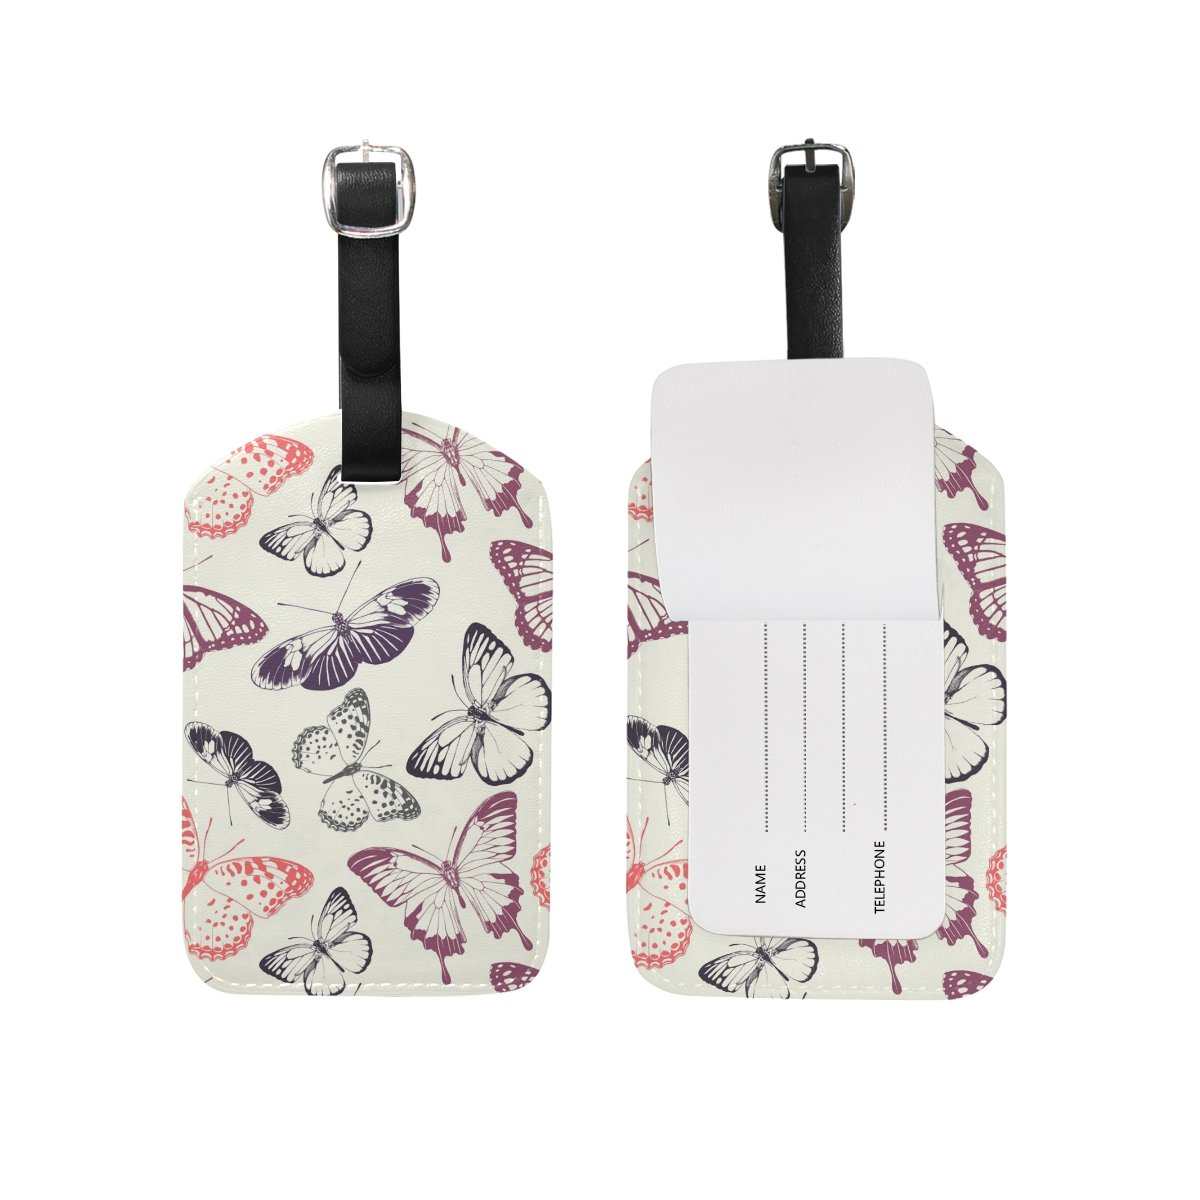 Art Butterfly Travel Leather Luggage Tags Bagage ID Labels (2 Pcs Set)